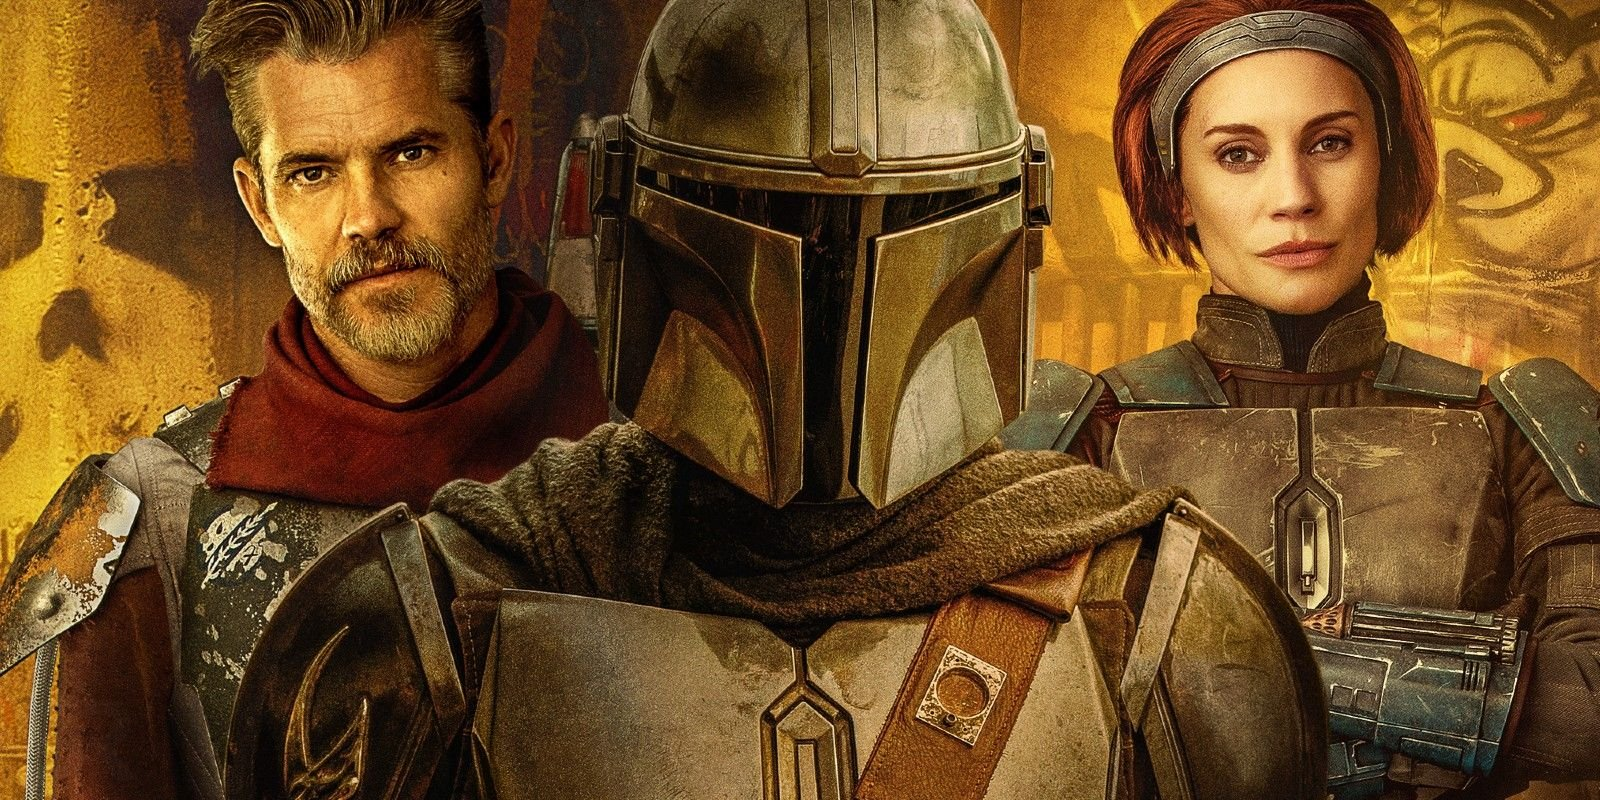 The Mandalorian Season 3: Update on the delayed Date of Release